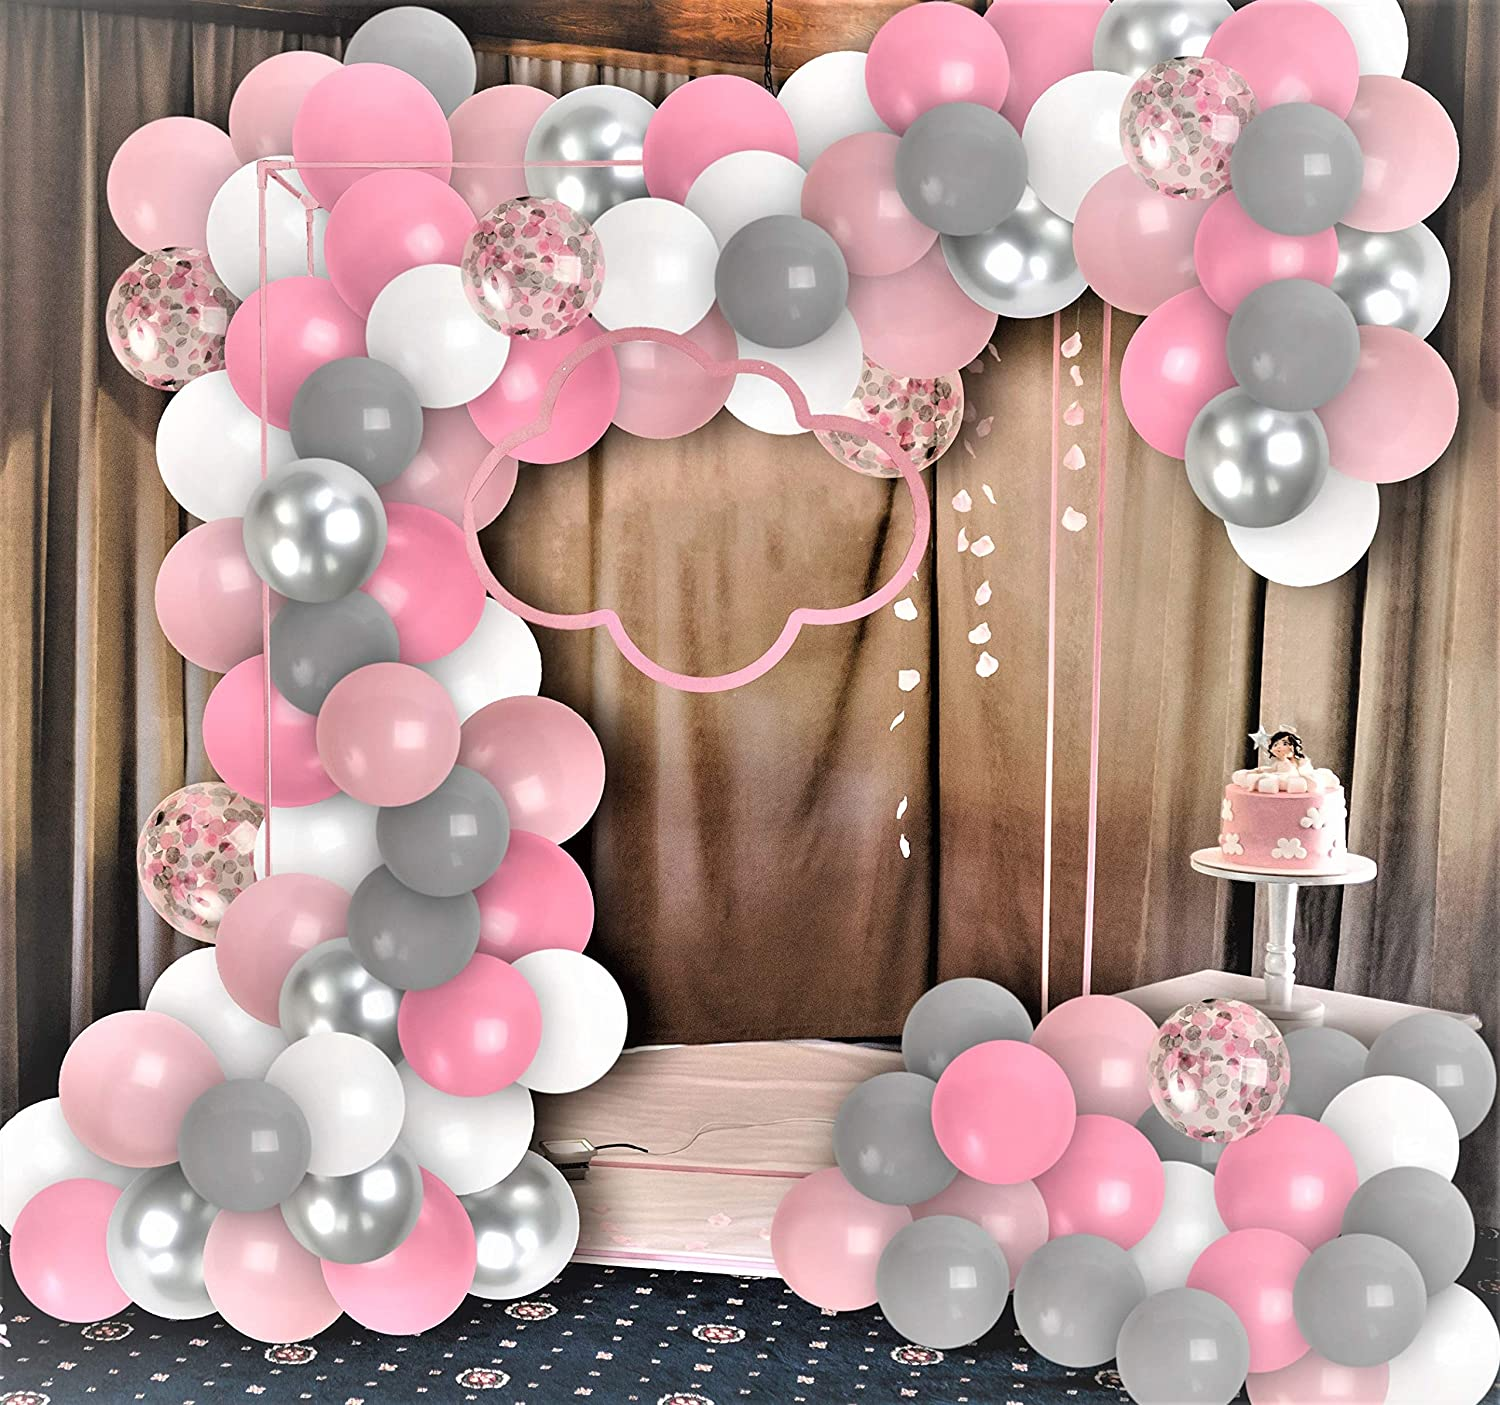 Pink Butterfly Baby Shower Decorations  from images-na.ssl-images-amazon.com